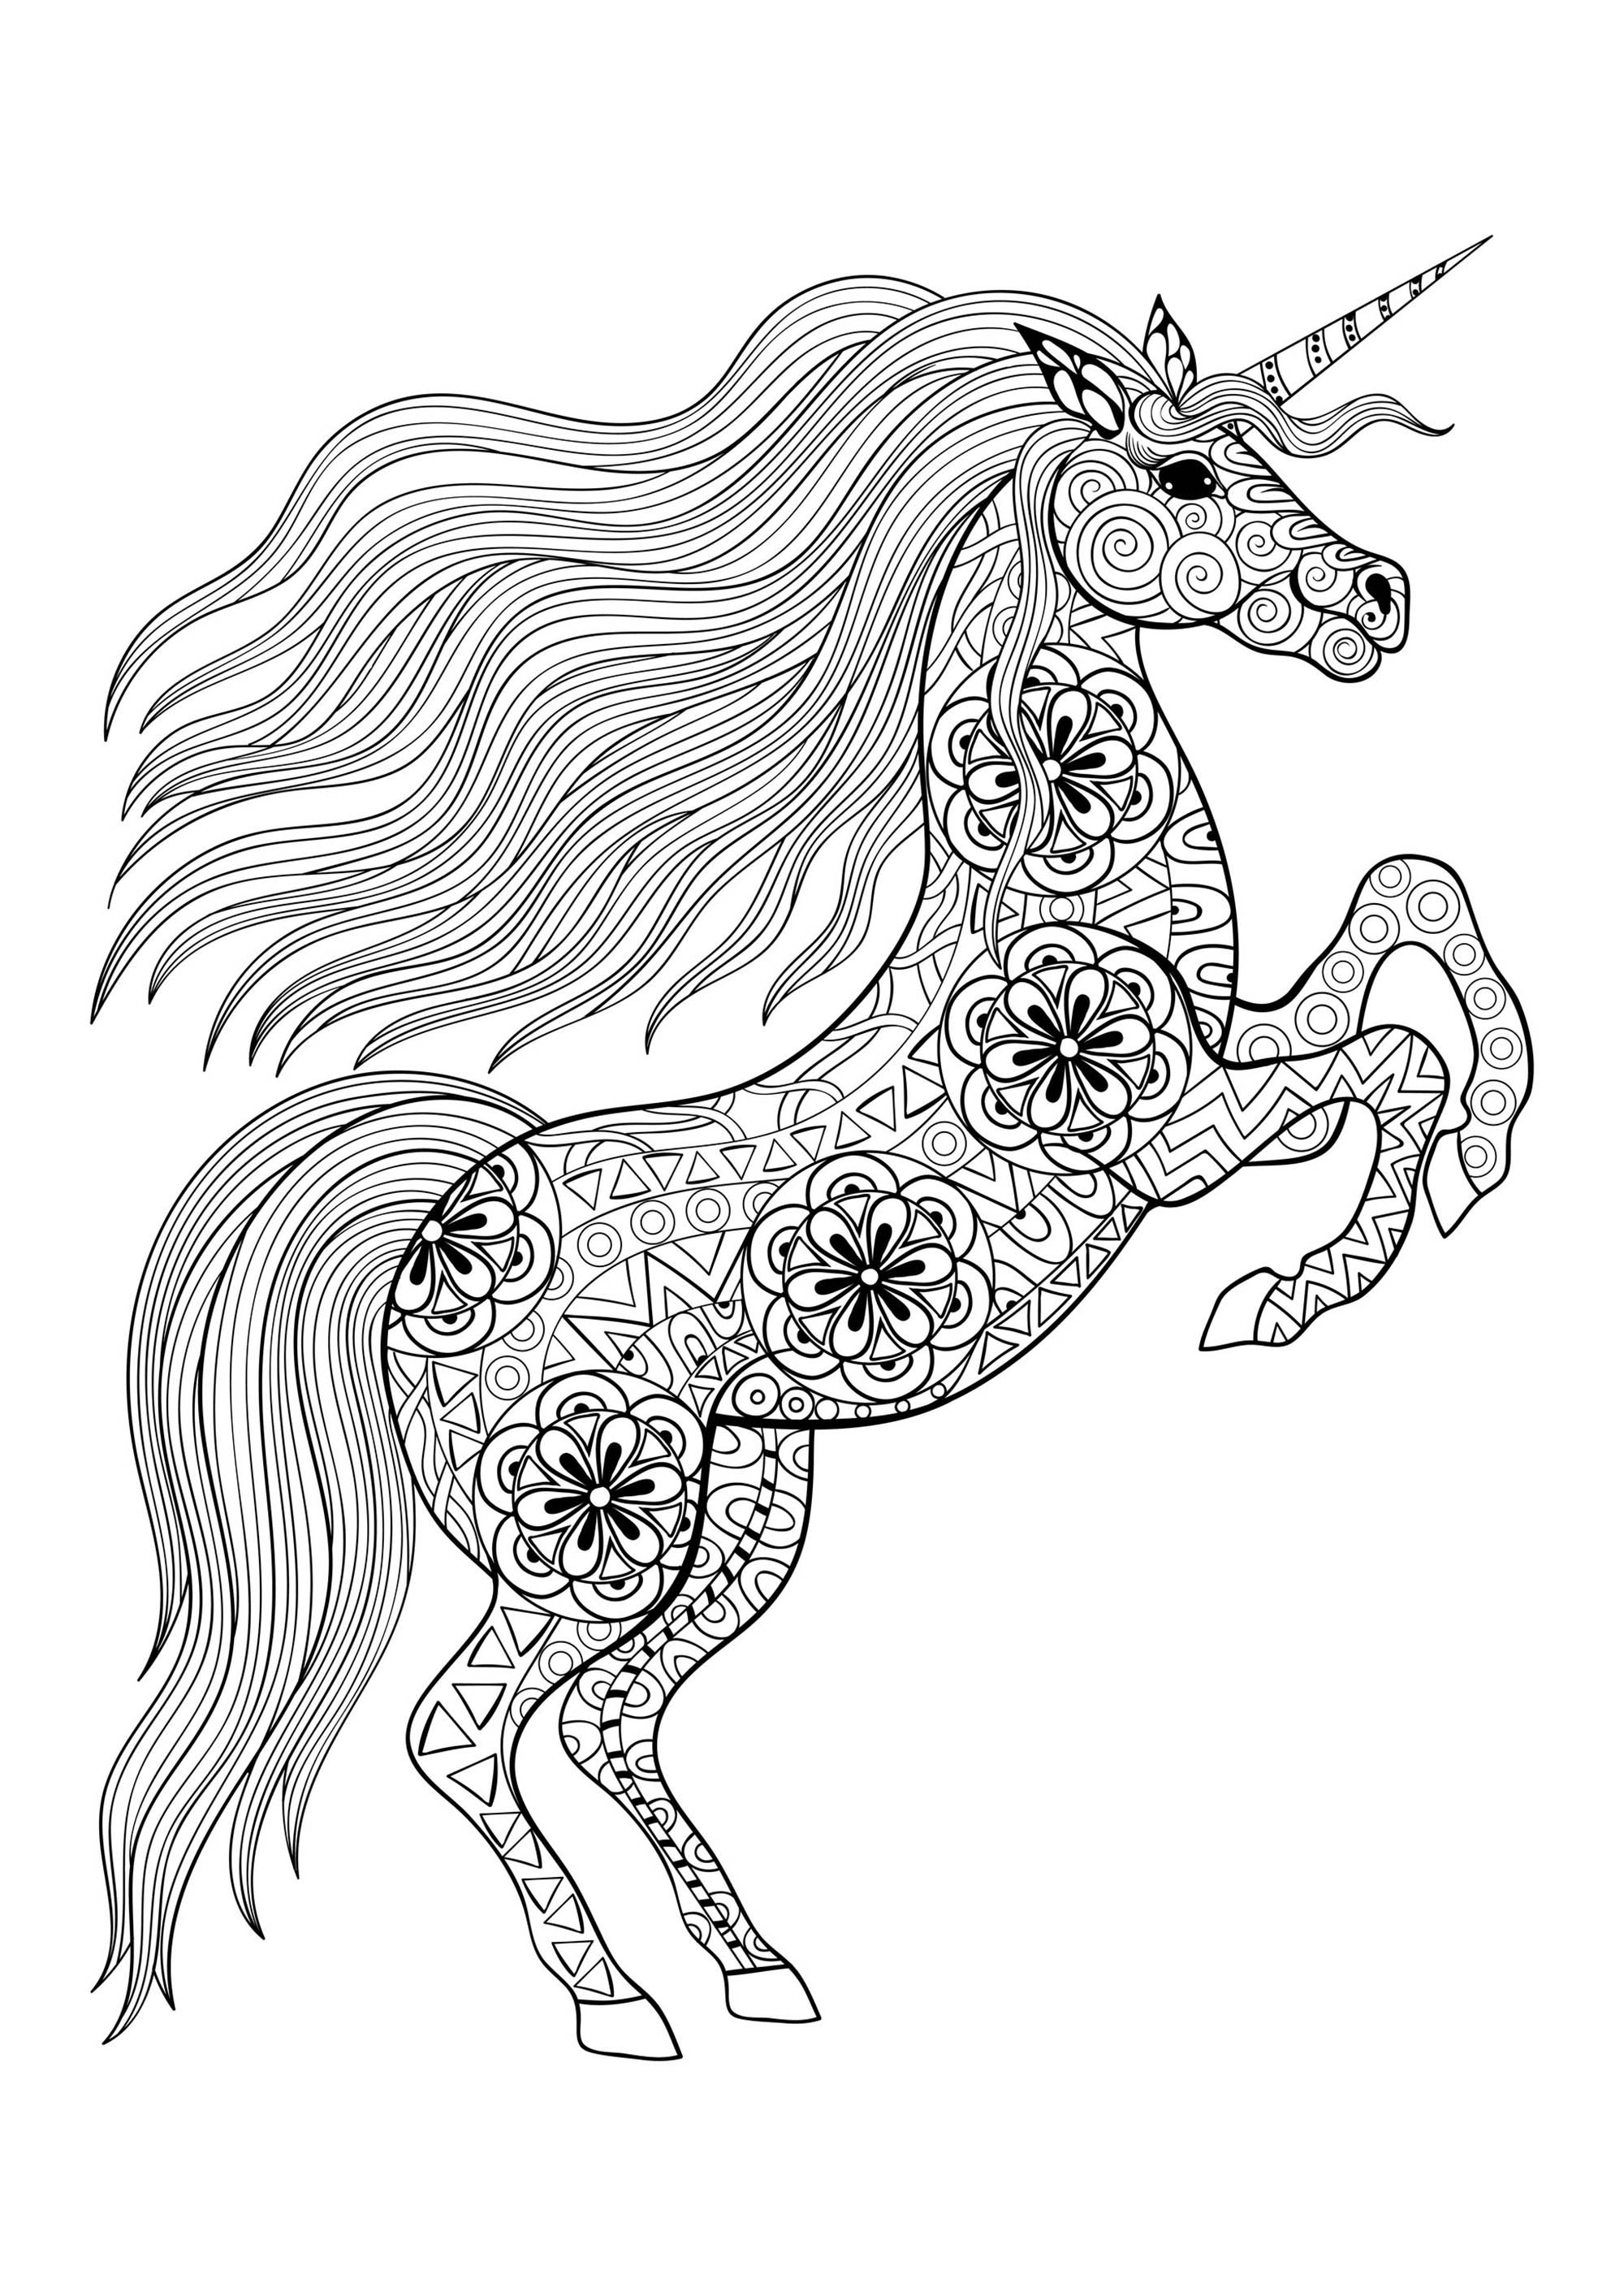 coloring worksheets unicorn realistic unicorn coloring pages download and print for free worksheets coloring unicorn